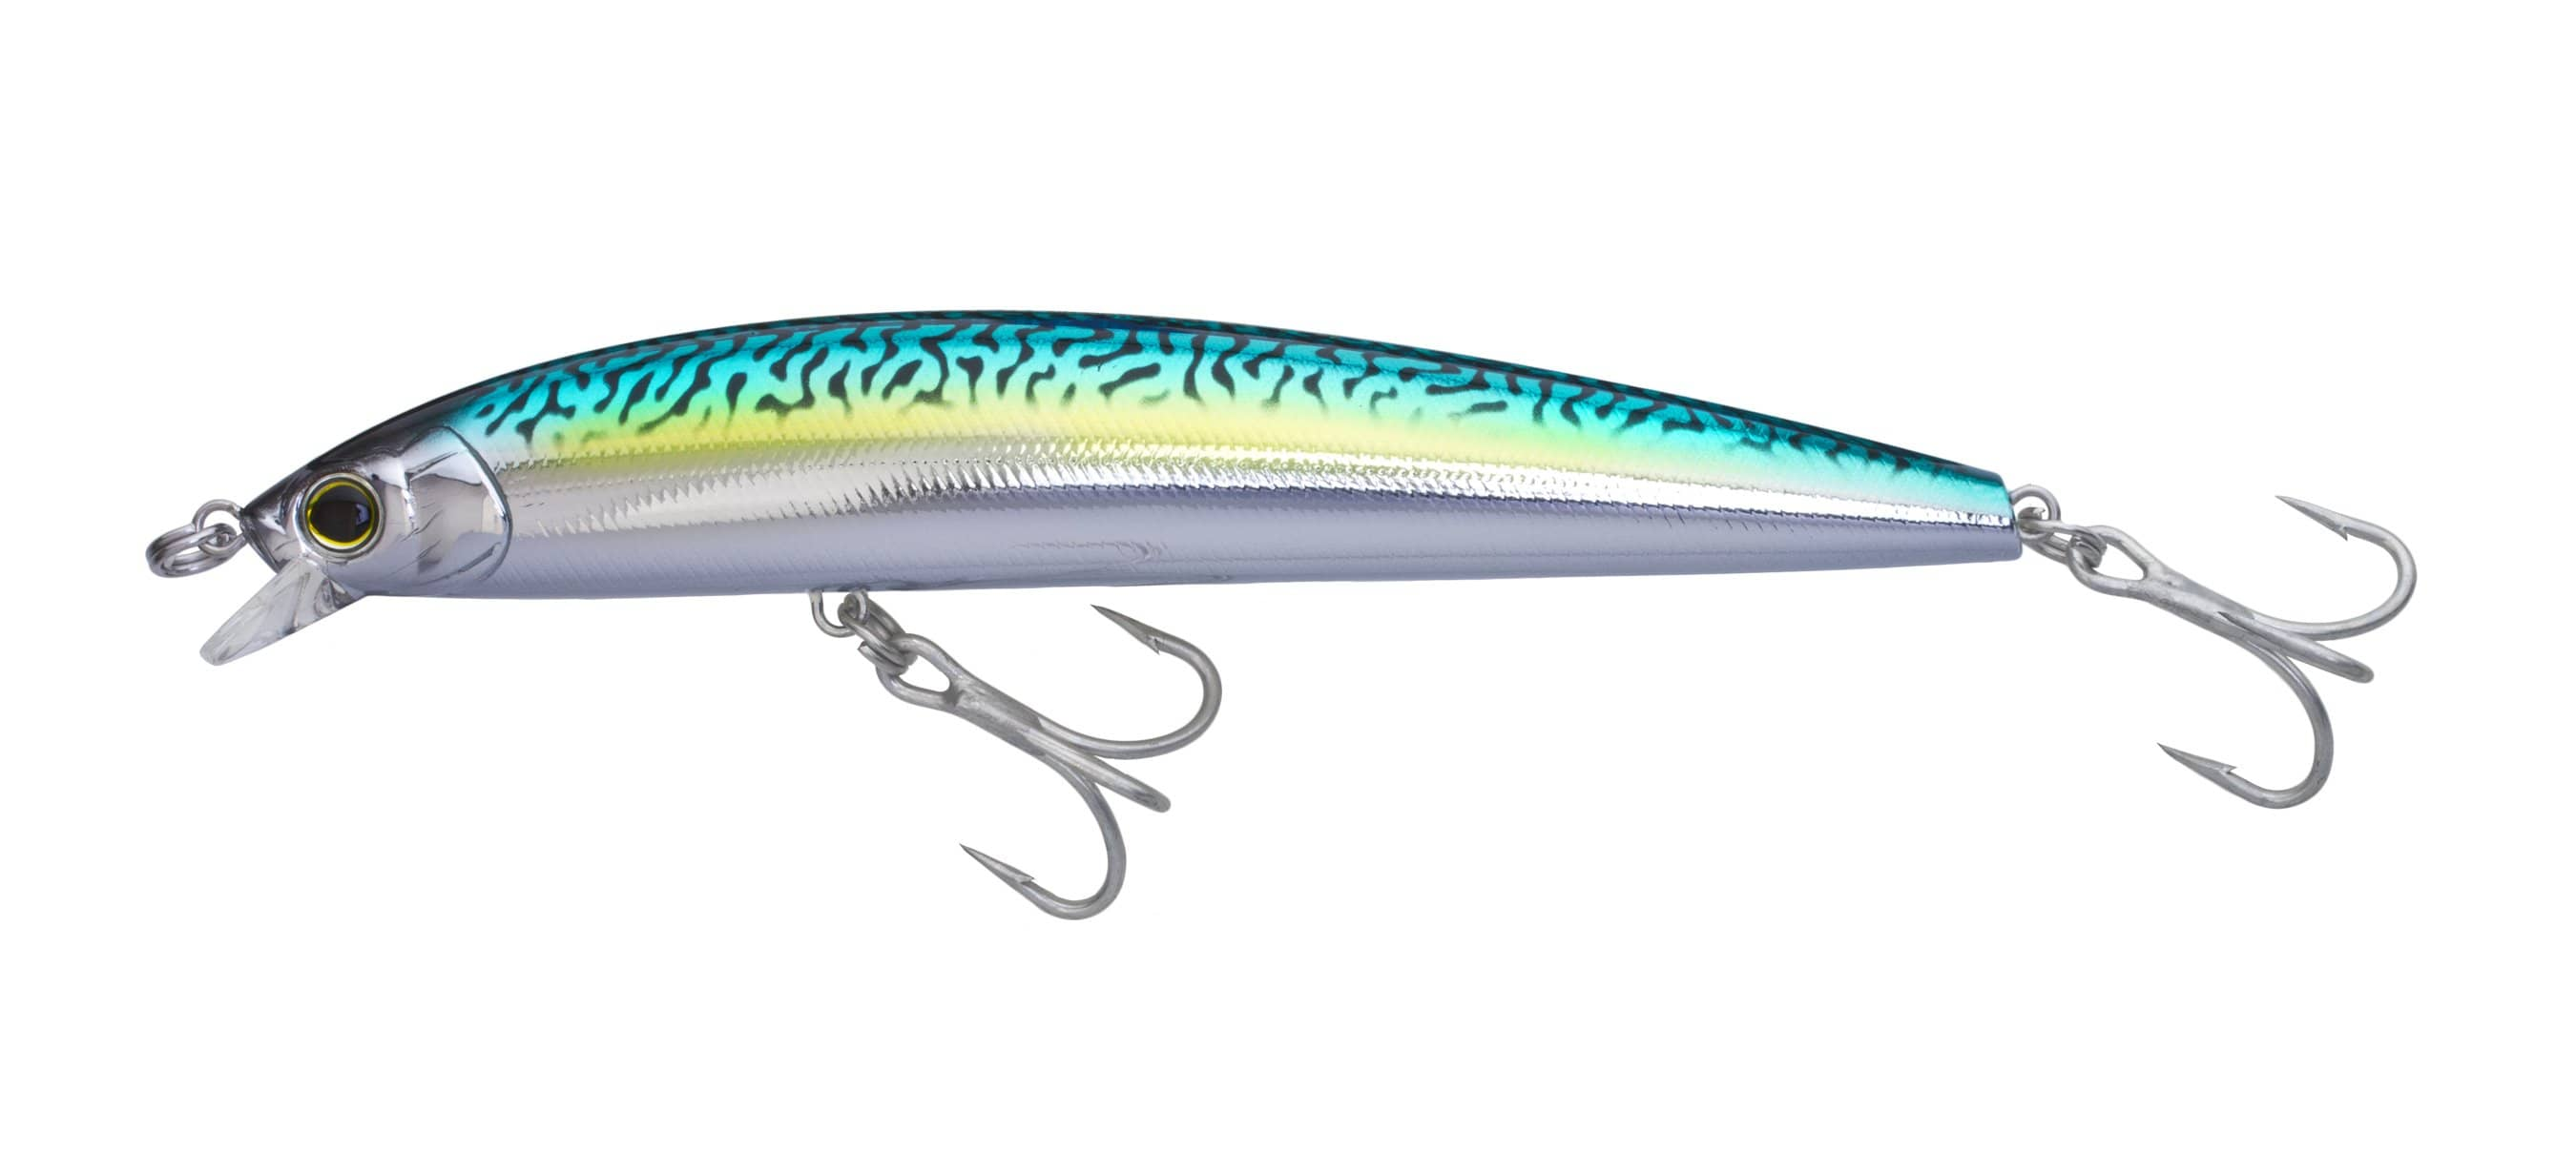 Yo-Zuri Hydro Minnow LC Green Mackerel